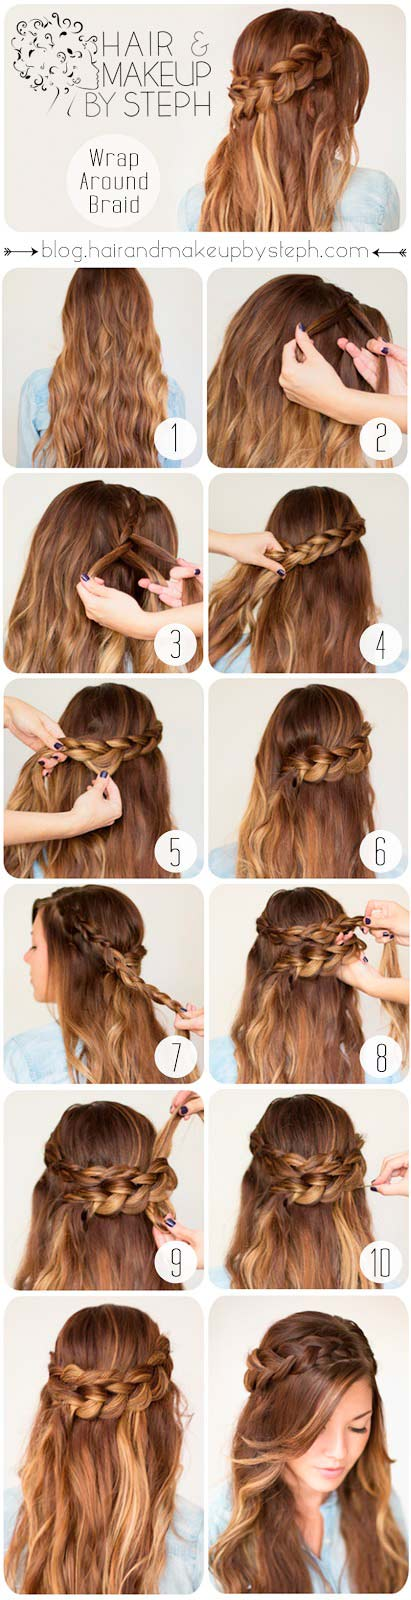 15 Quick And Easy Everyday Hairstyle Ideas Long Hair Styles Romantic Hairstyles Tutorial Hair Styles